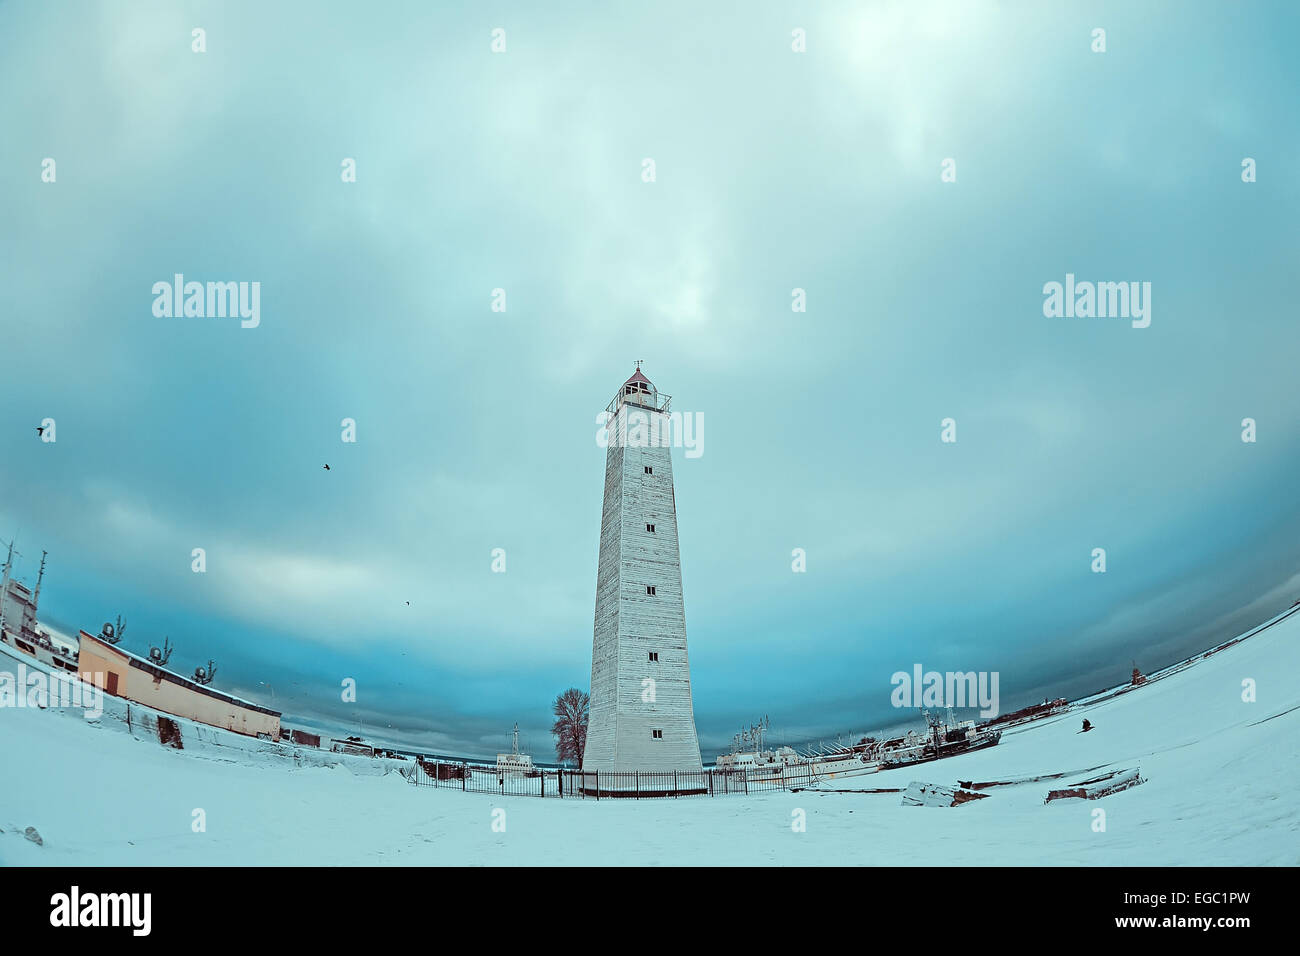 View of the seamark in Kronstadt, Russia. Made by fisheye lens. Stock Photo